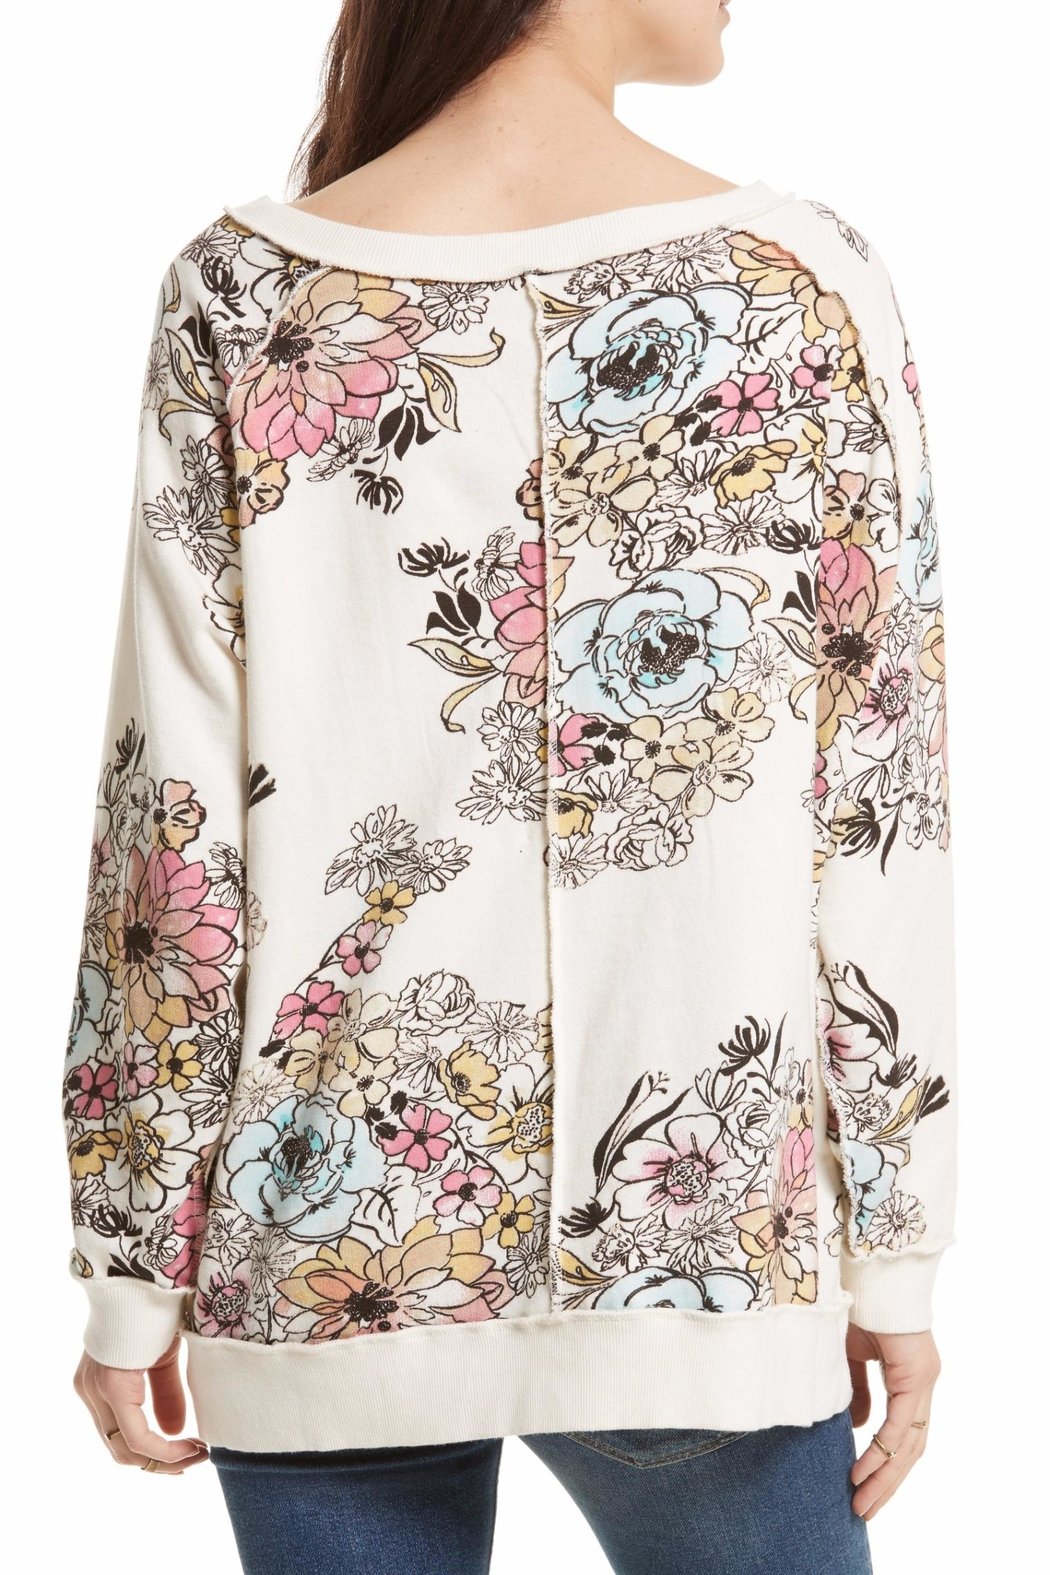 Free People Floral Printed Pullover - Front Full Image